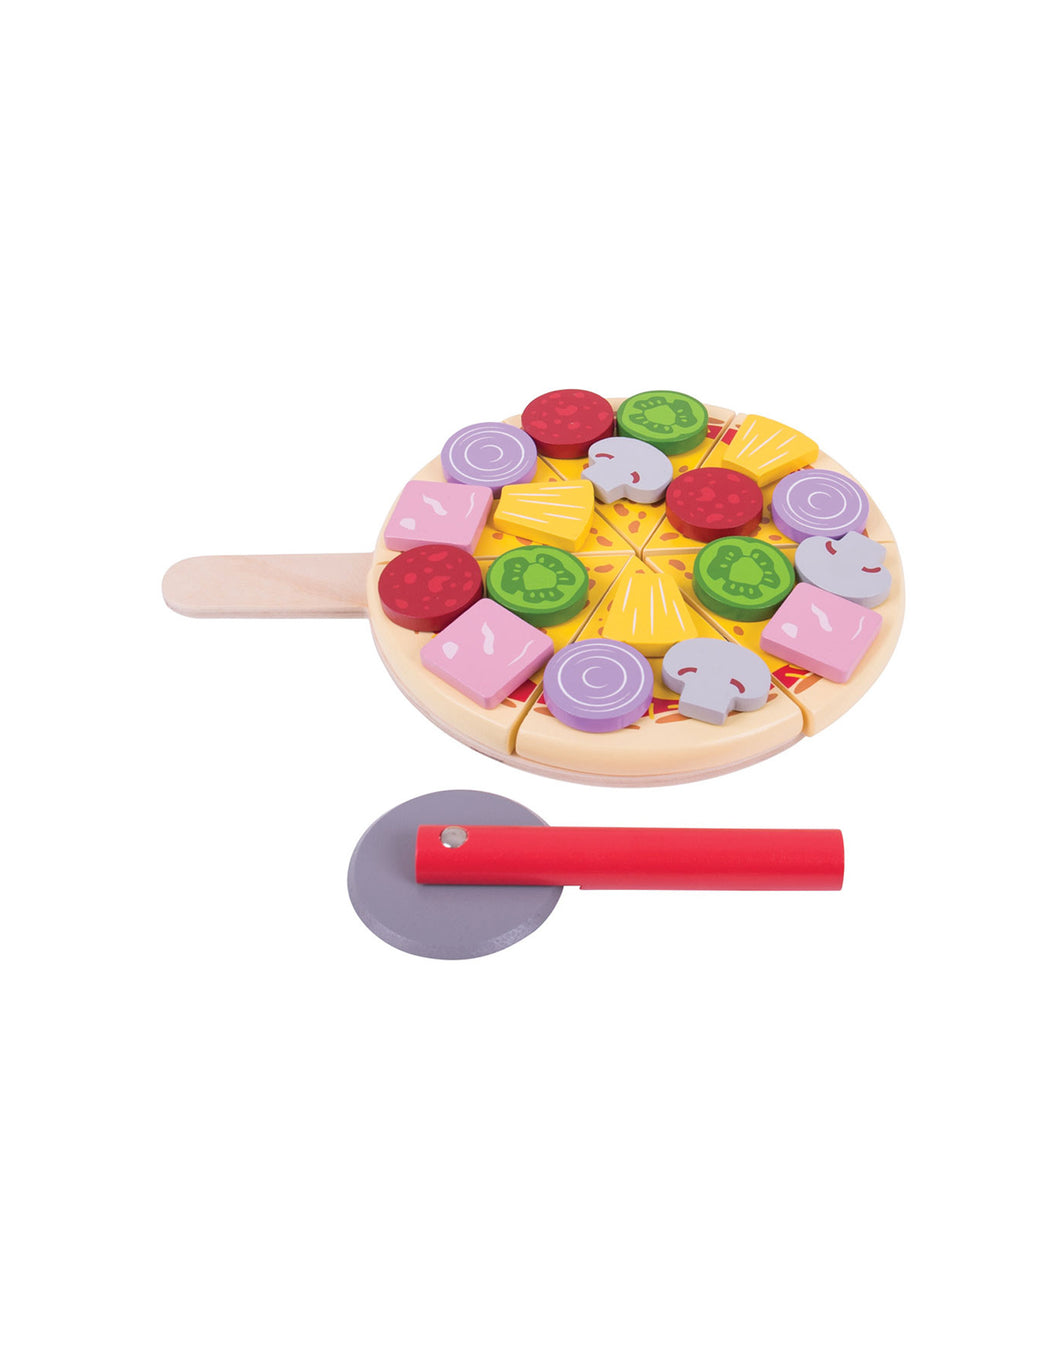 Wooden Cutting Pizza and Pizza Slice